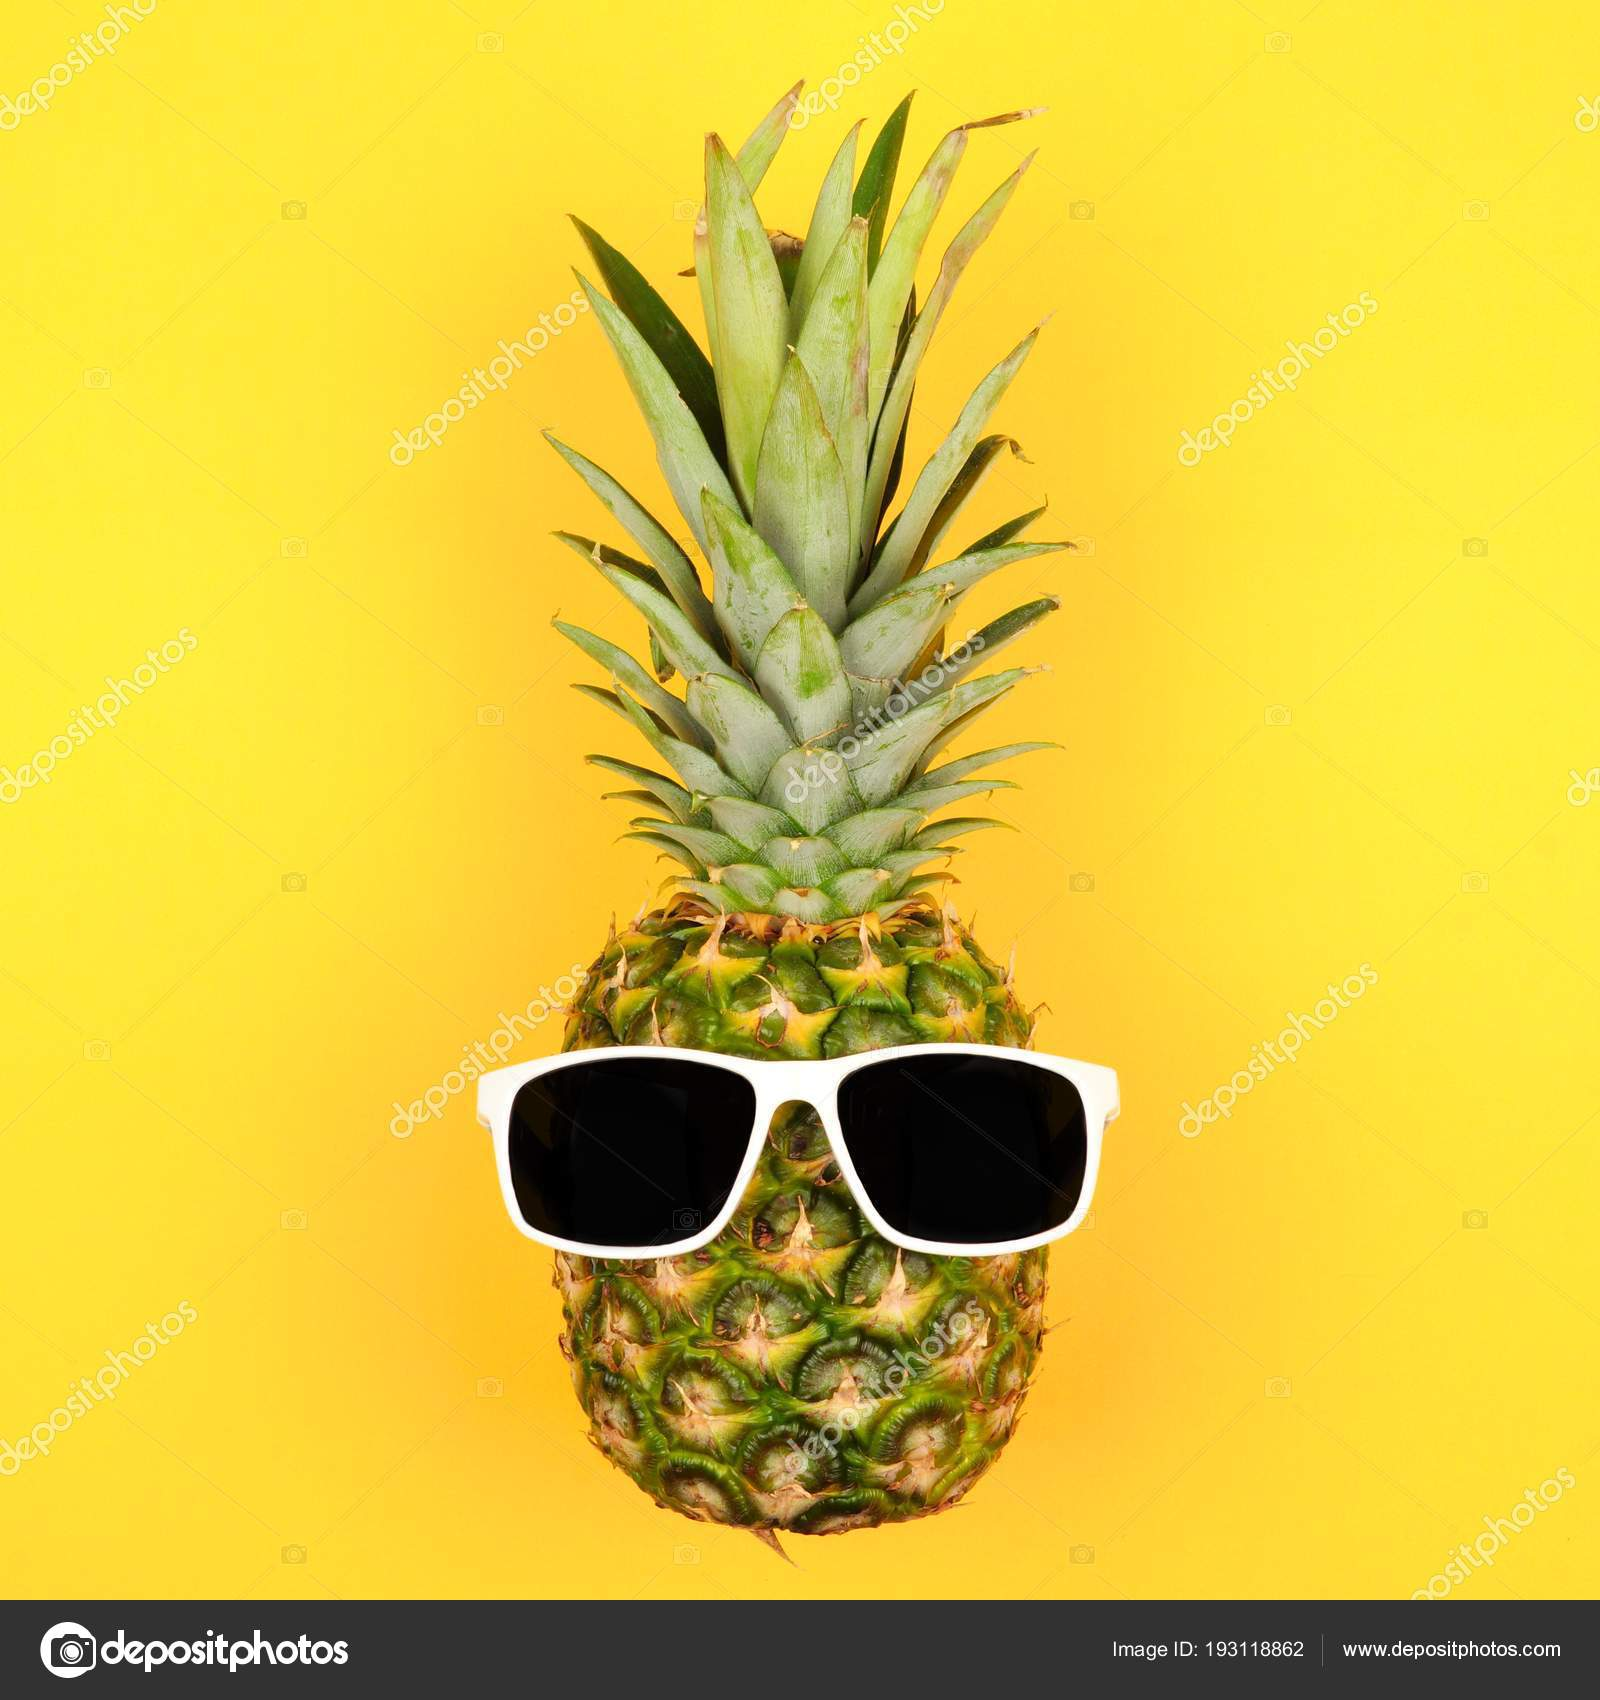 e4ee55d5f Hipster Pineapple Sunglasses Top View Yellow Background Minimal ...